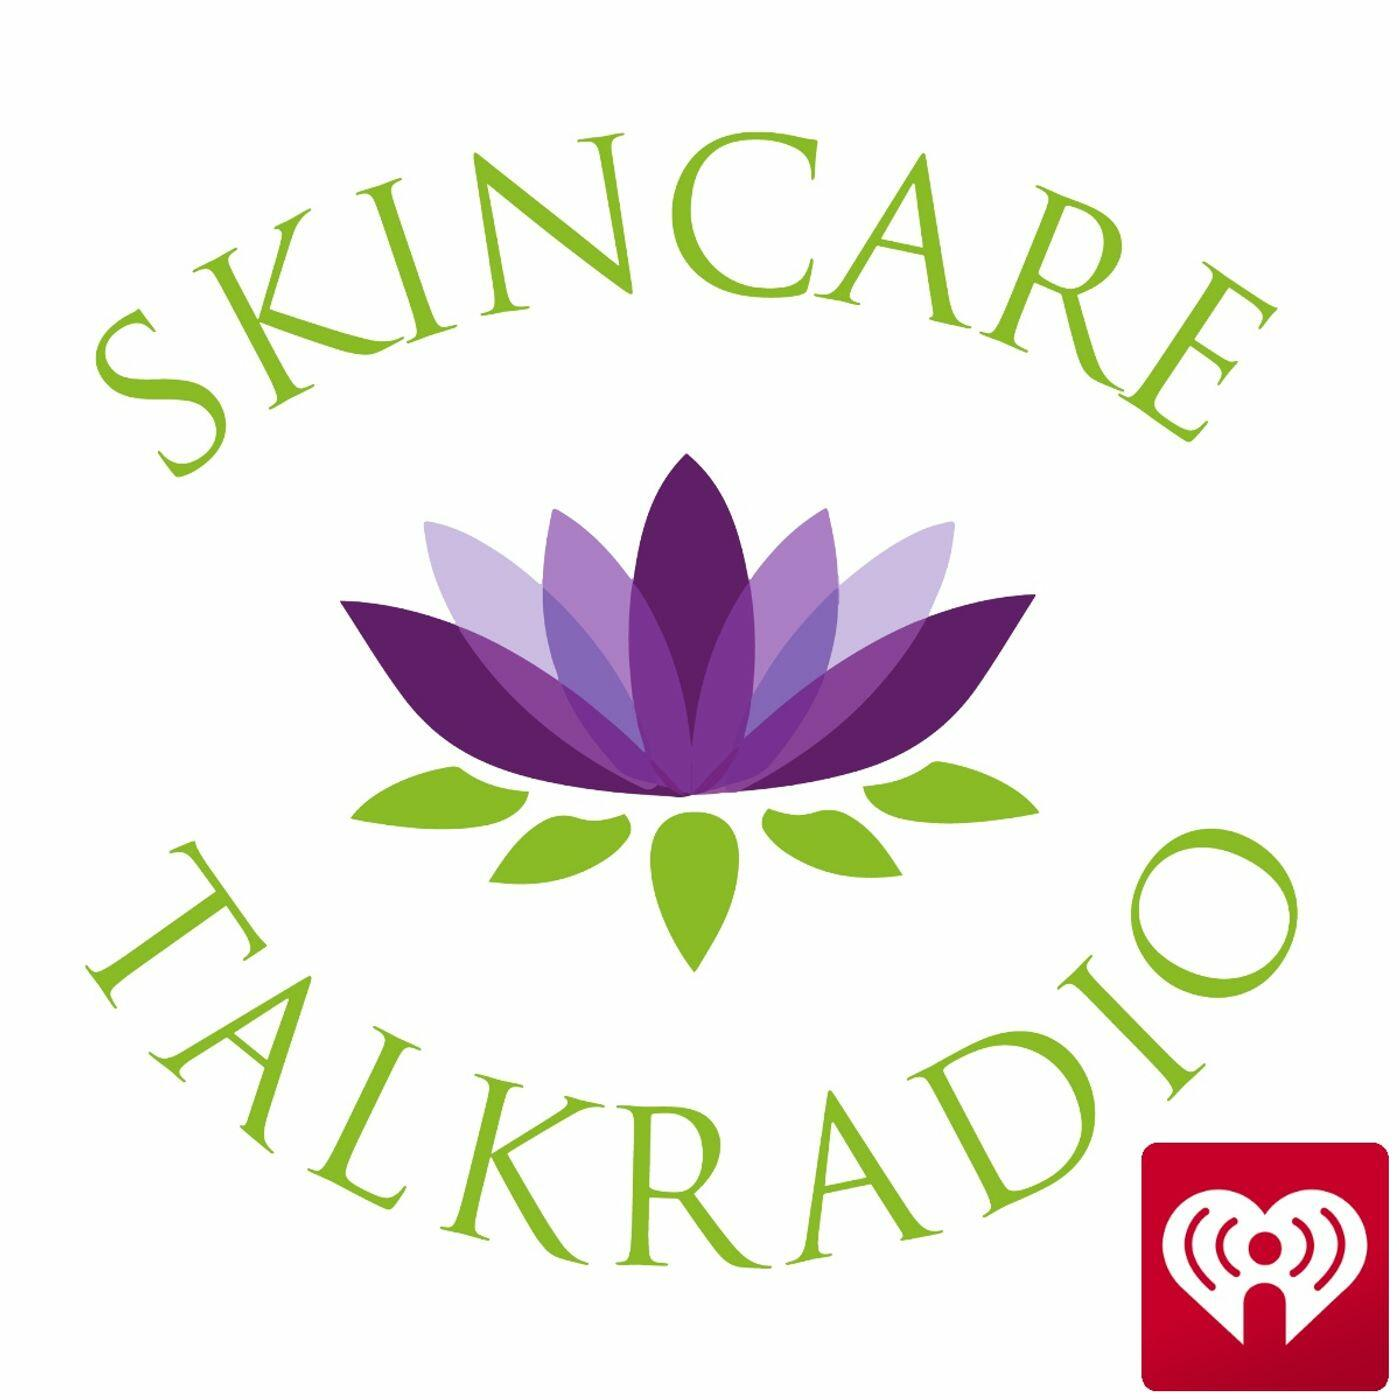 Listen to the Skincare Talk Radio Episode - S-757:  Skincare to Self-Care with Bryanna from The Ecological on iHeartRadio | iHeartRadio